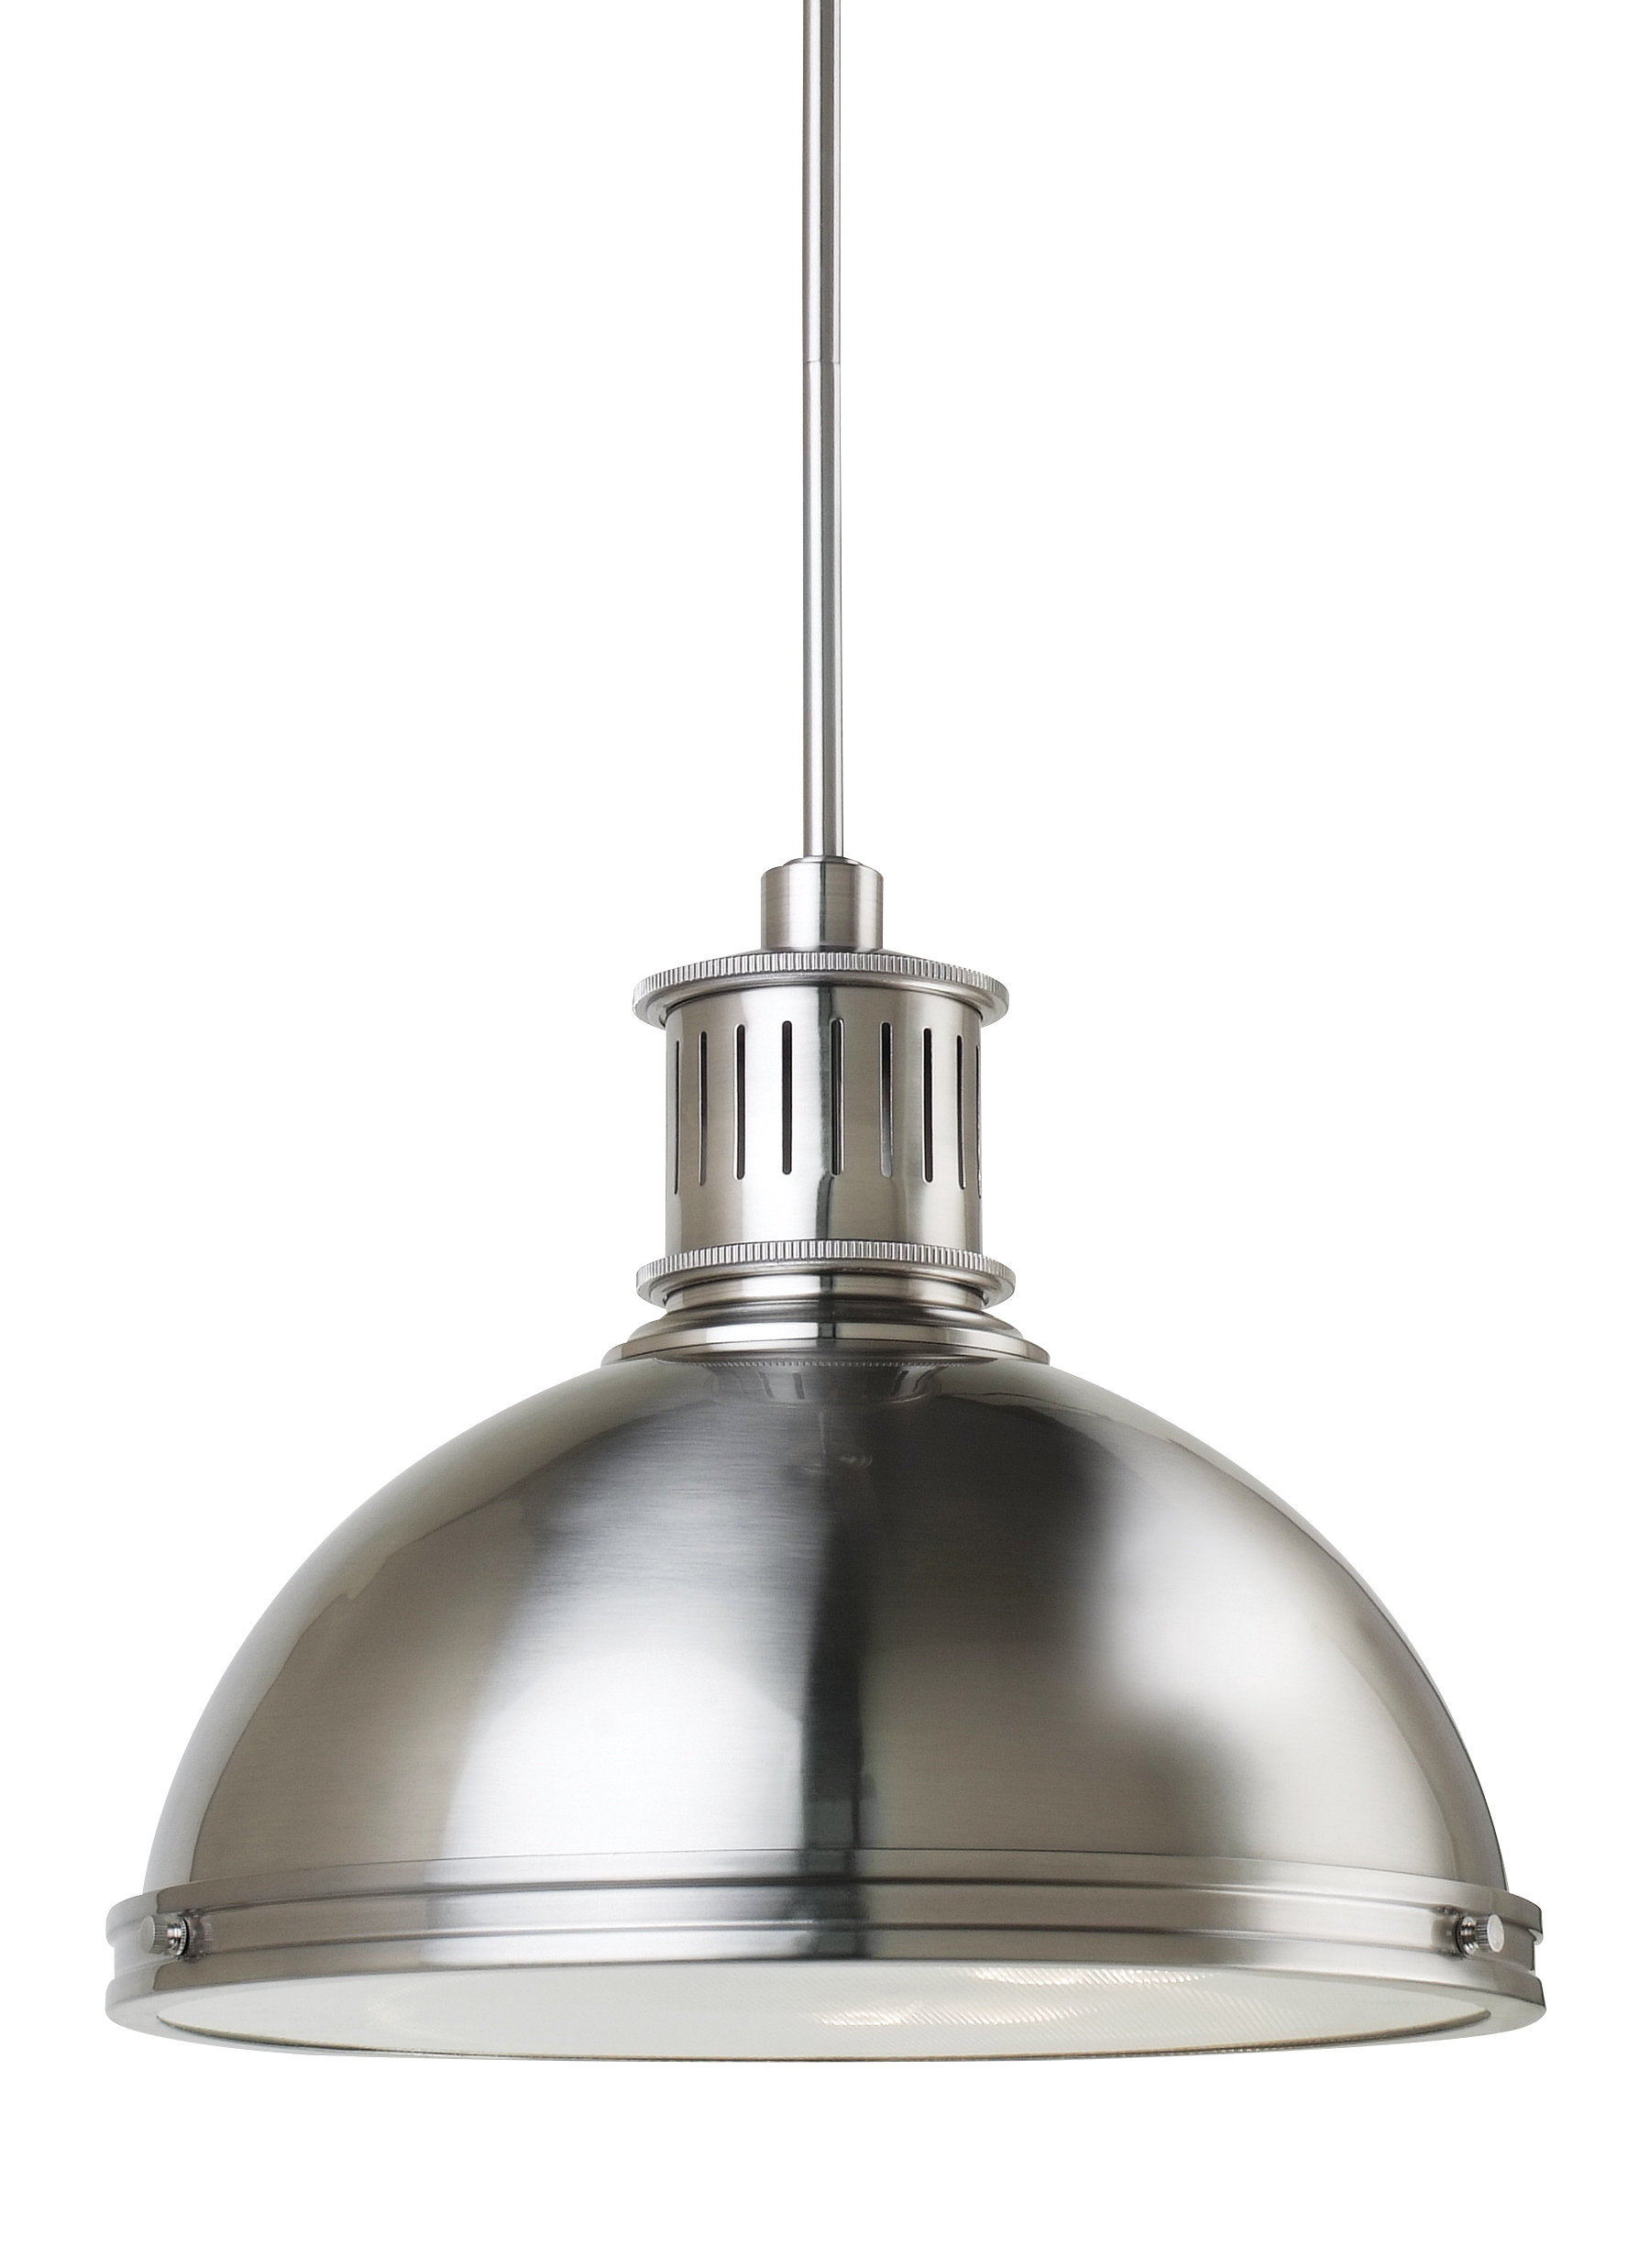 Amara 3 Light Dome Pendant With Popular Amara 3 Light Dome Pendants (View 1 of 20)